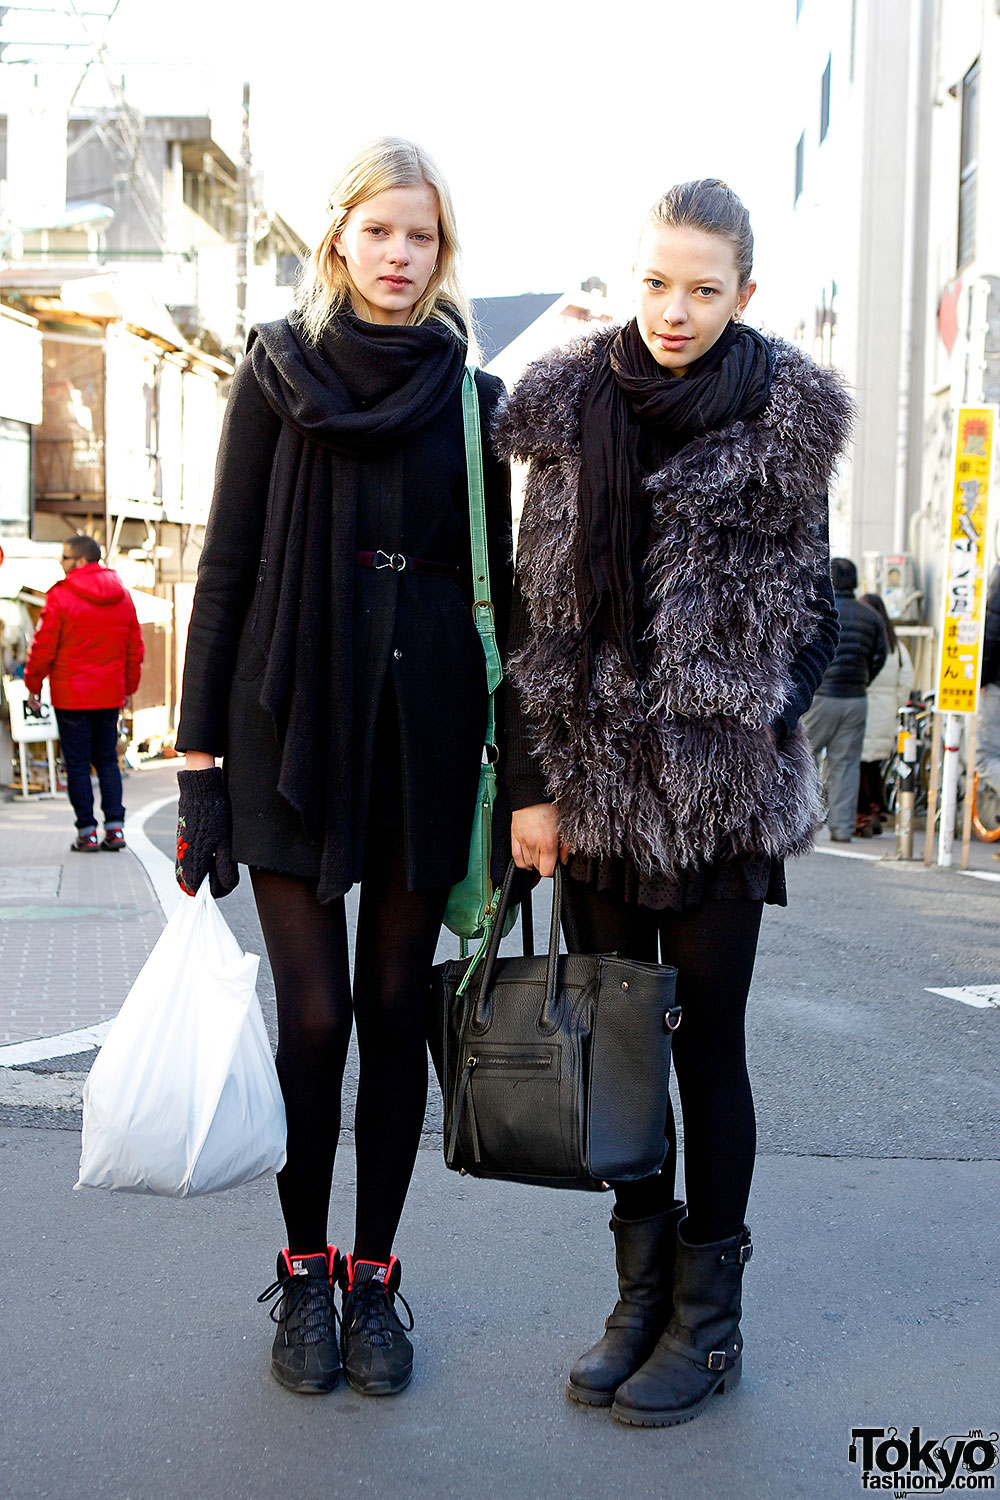 Estonian Fashion Models in Harajuku